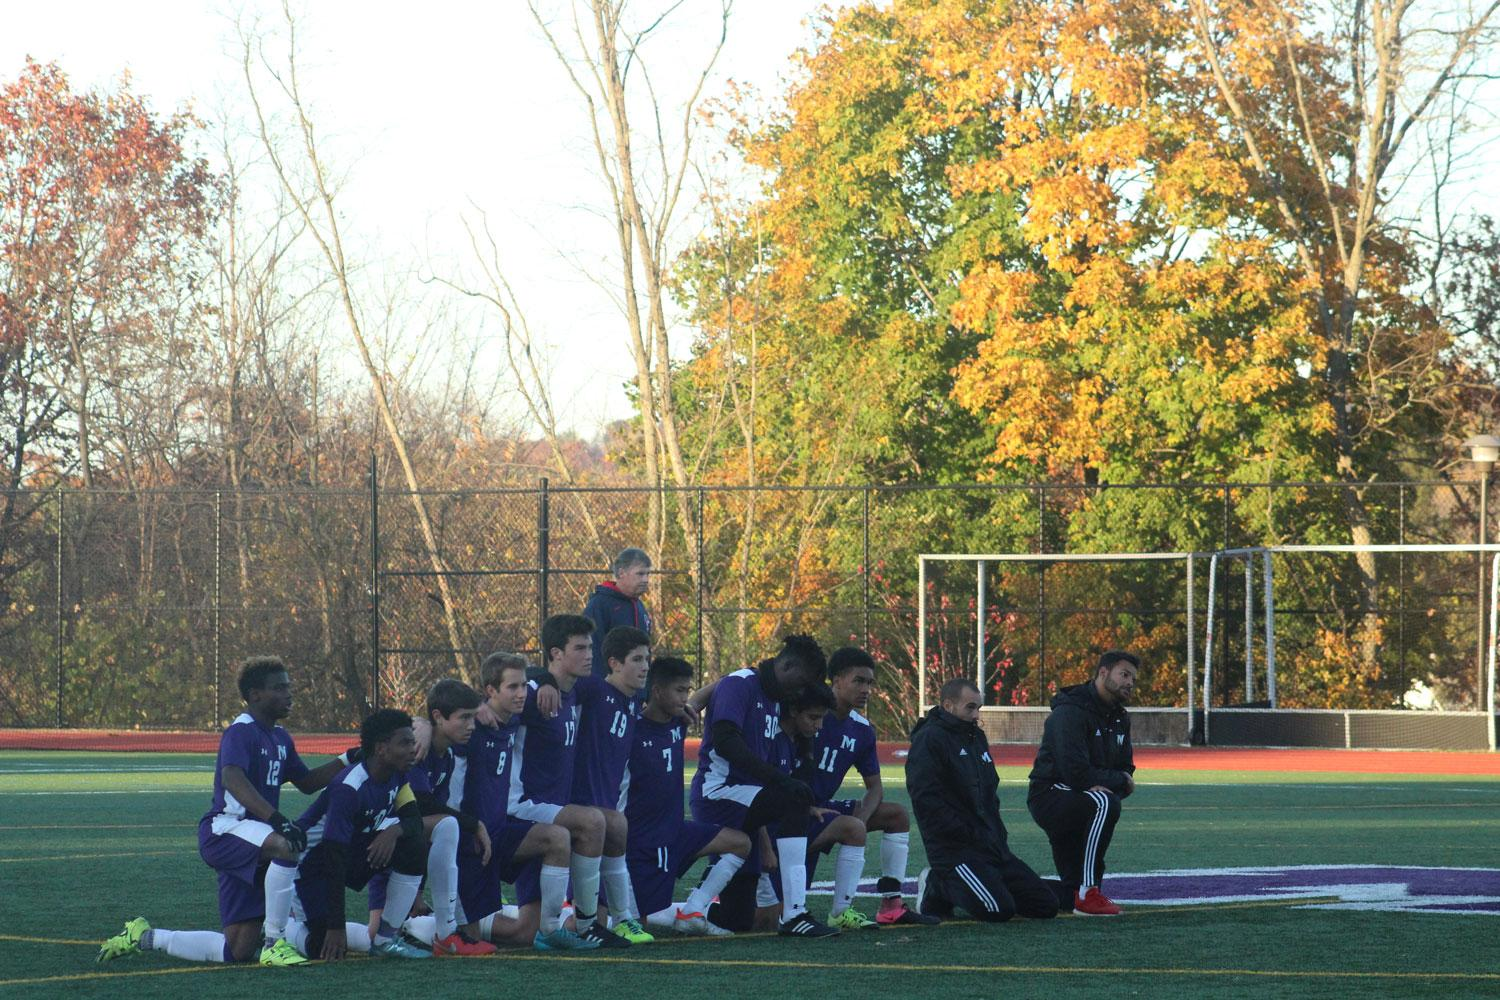 The Boys Varsity Soccer team kneels as they watch their teammates shoot penalty kicks.